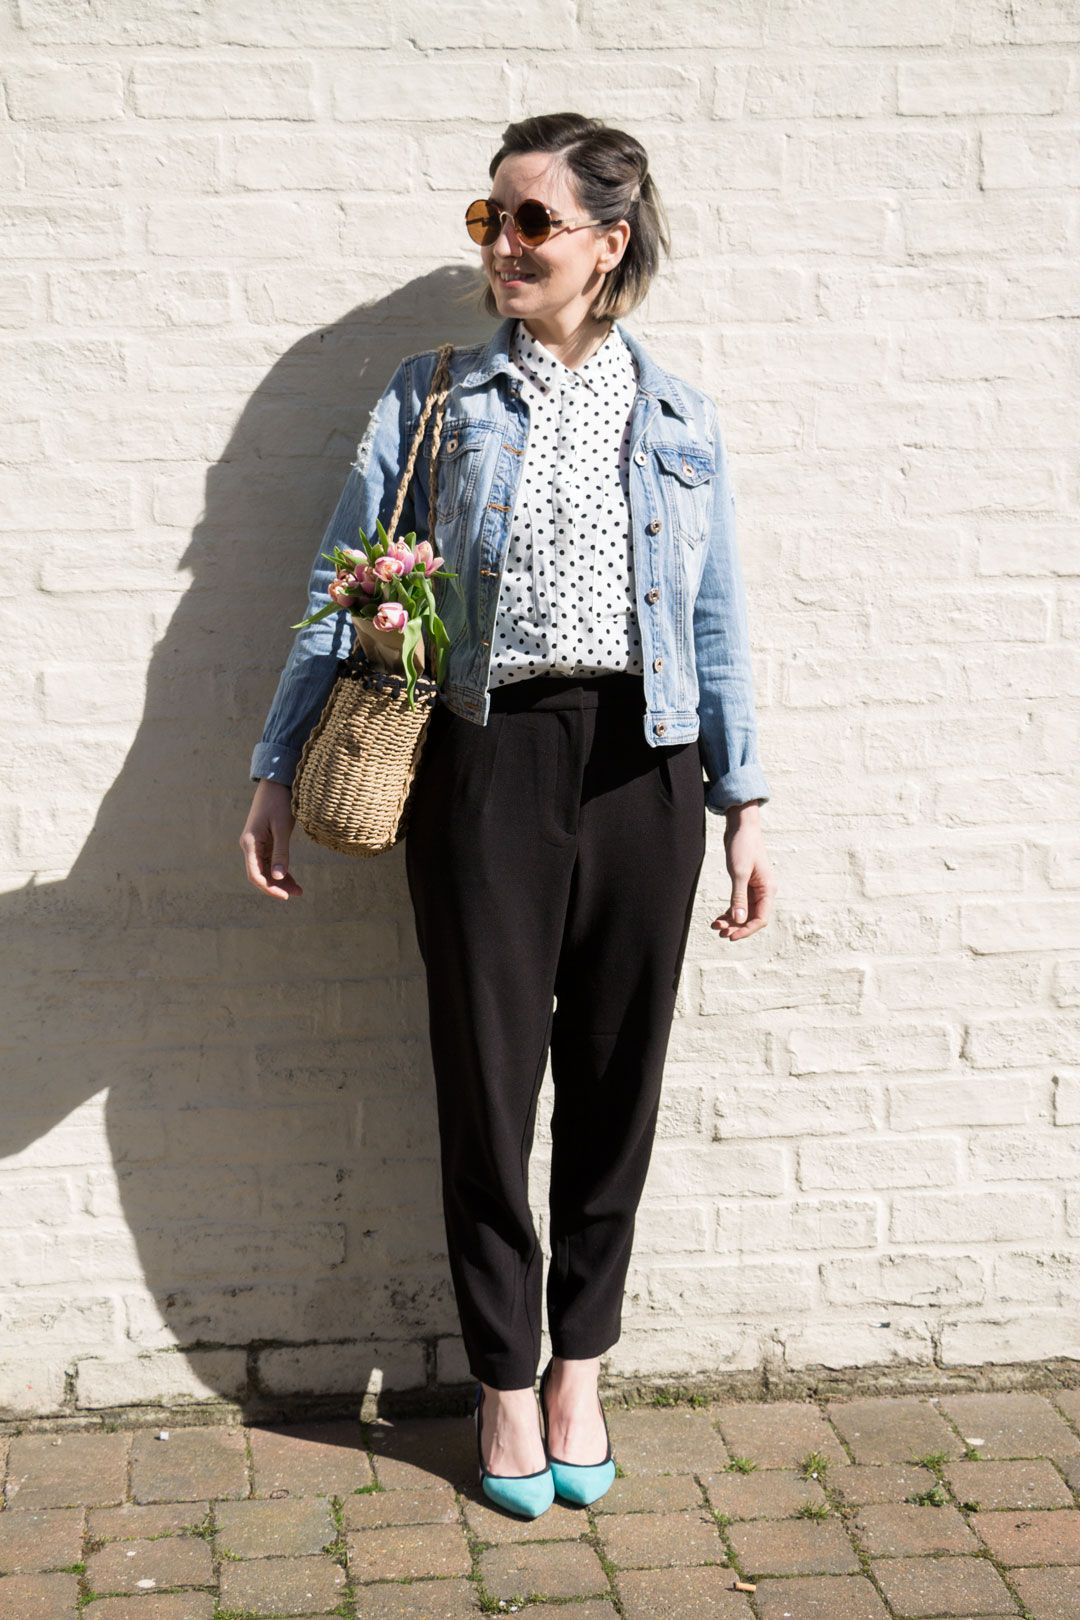 She talks Glam | Polka dots shirt, pleated pants and light denim jacket | Blue heels and wicker ZARA bag | Cambridge Fashion